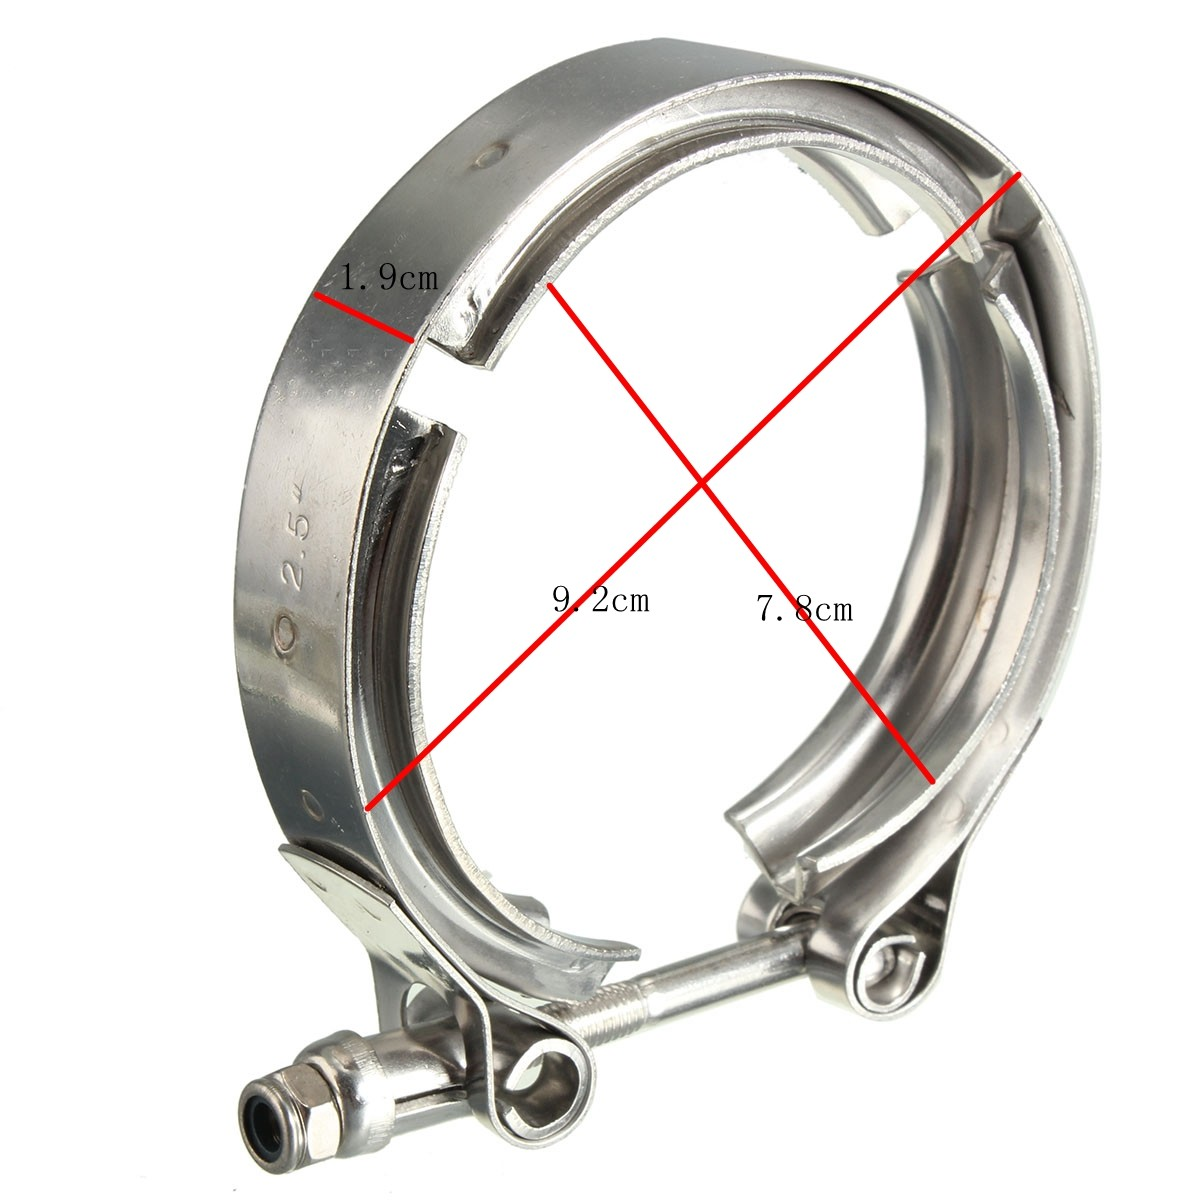 2.5 STAINLESS V-BAND FLANGE and CLAMP KIT FOR TURBO ...